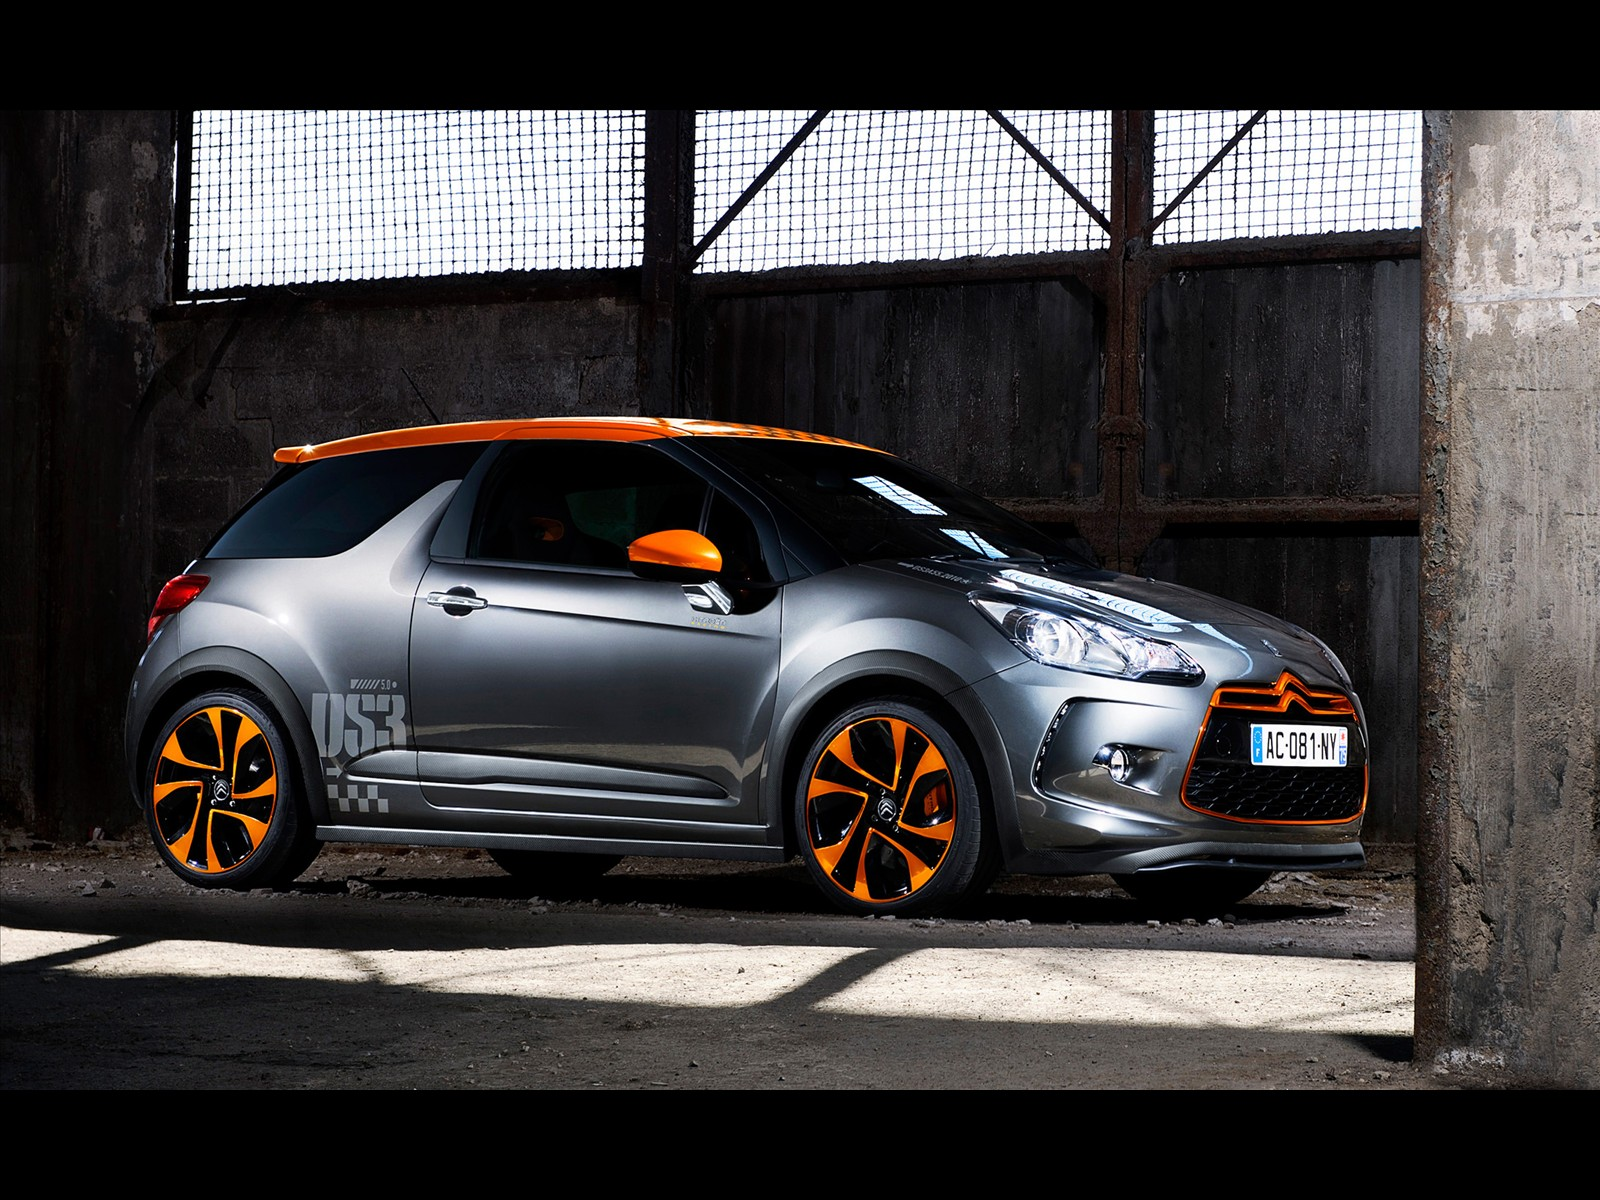 citroen ds3 racing free desktop wallpapers for widescreen hd and mobile. Black Bedroom Furniture Sets. Home Design Ideas